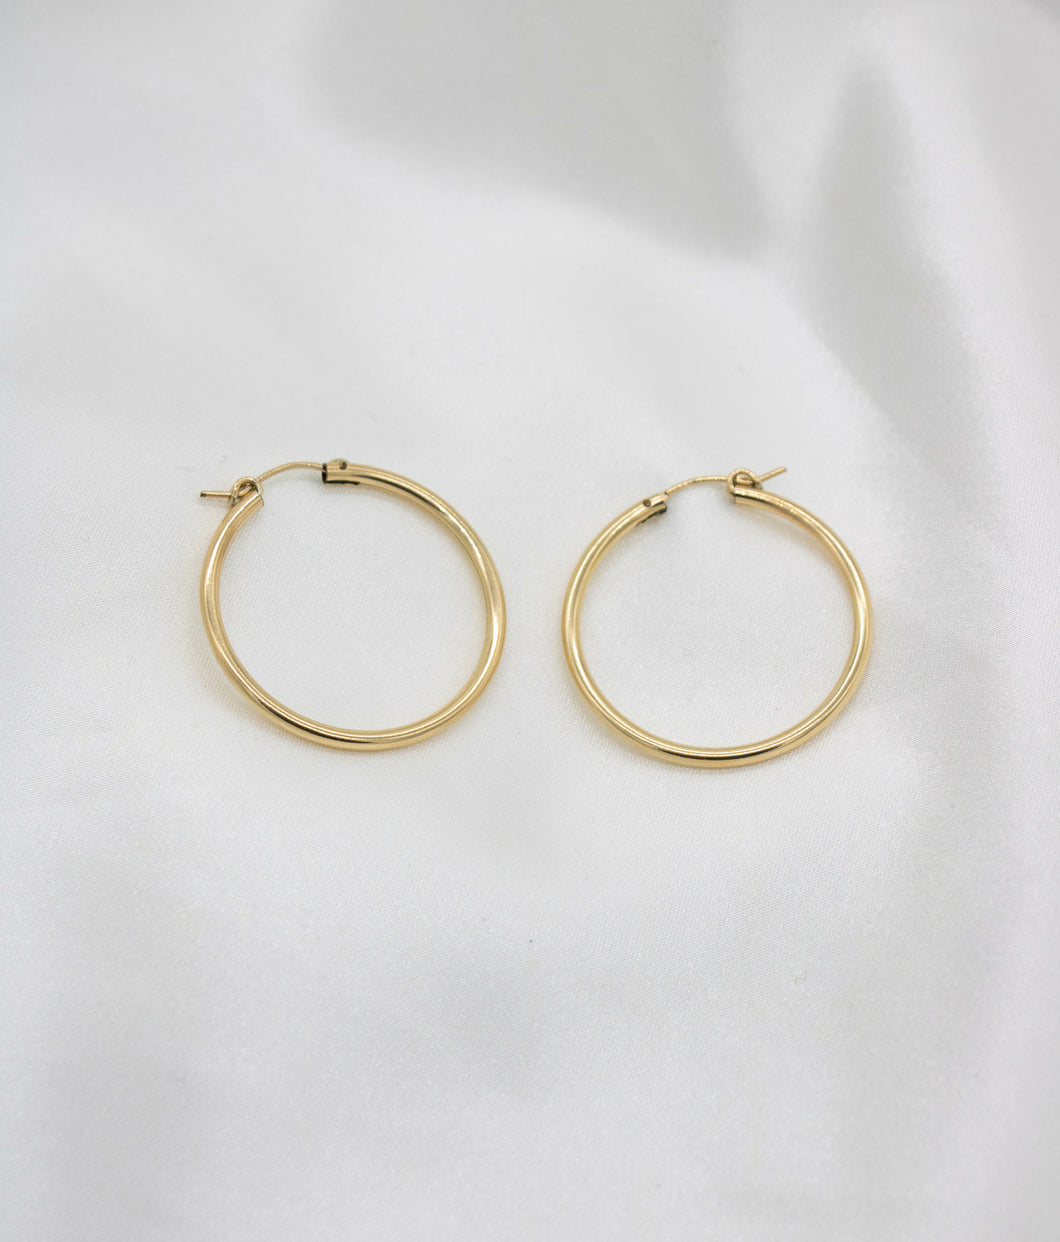 hoops, gold, earrings, accessorize, accessories, cuffs, jewelry, Candela Gold Filled Tube Hoops, gold-filled